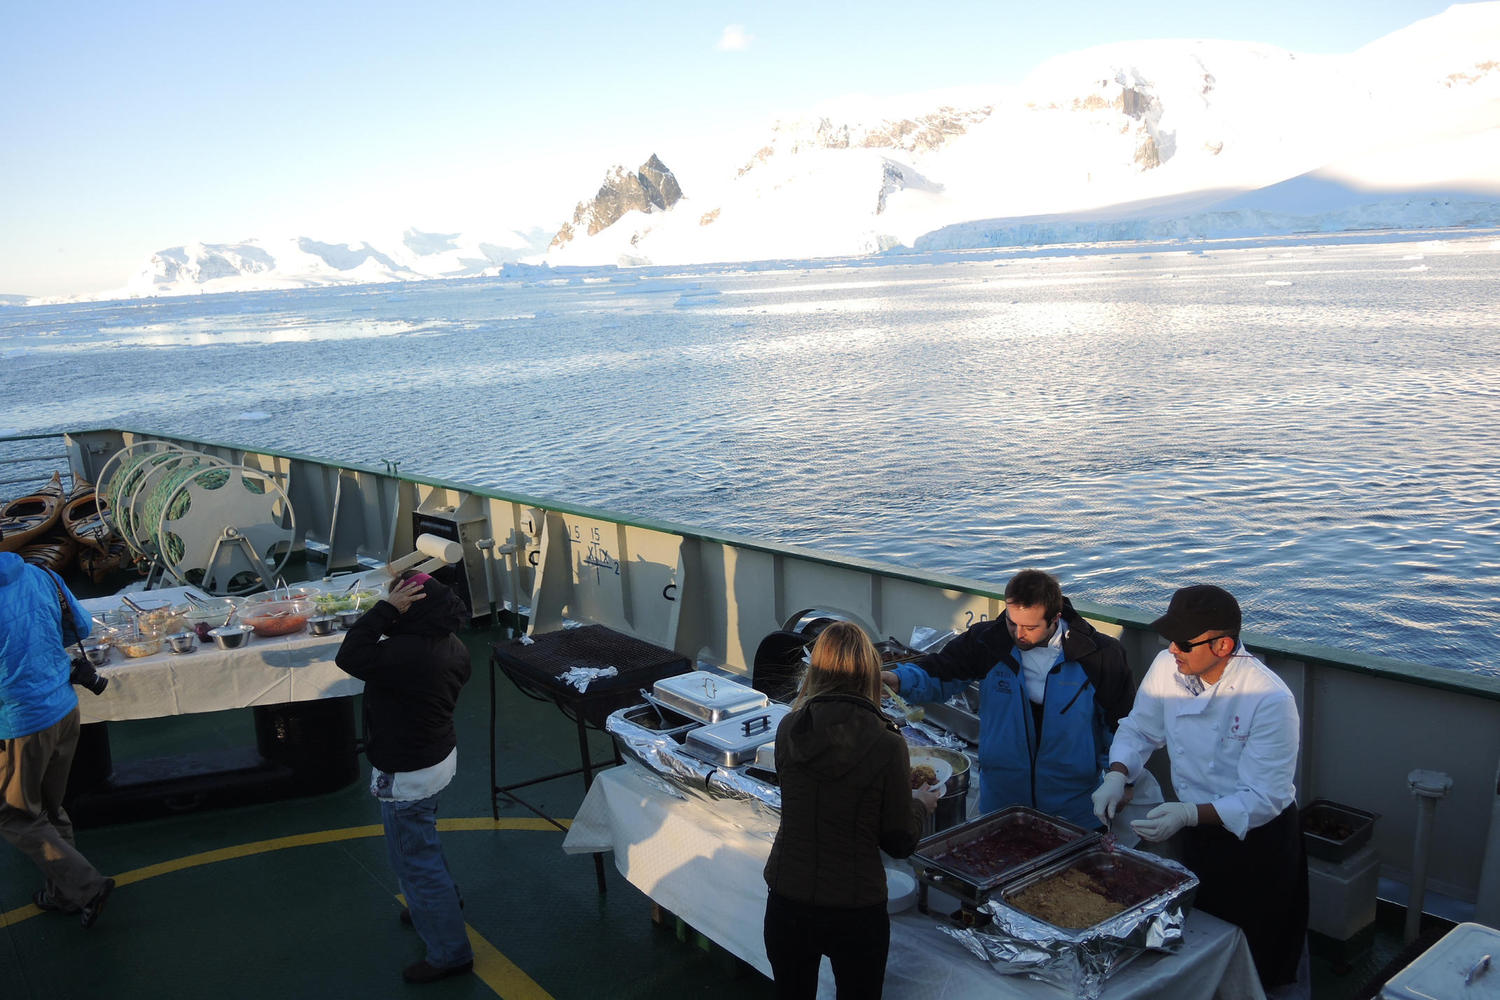 Barbecue on deck in Antarctica